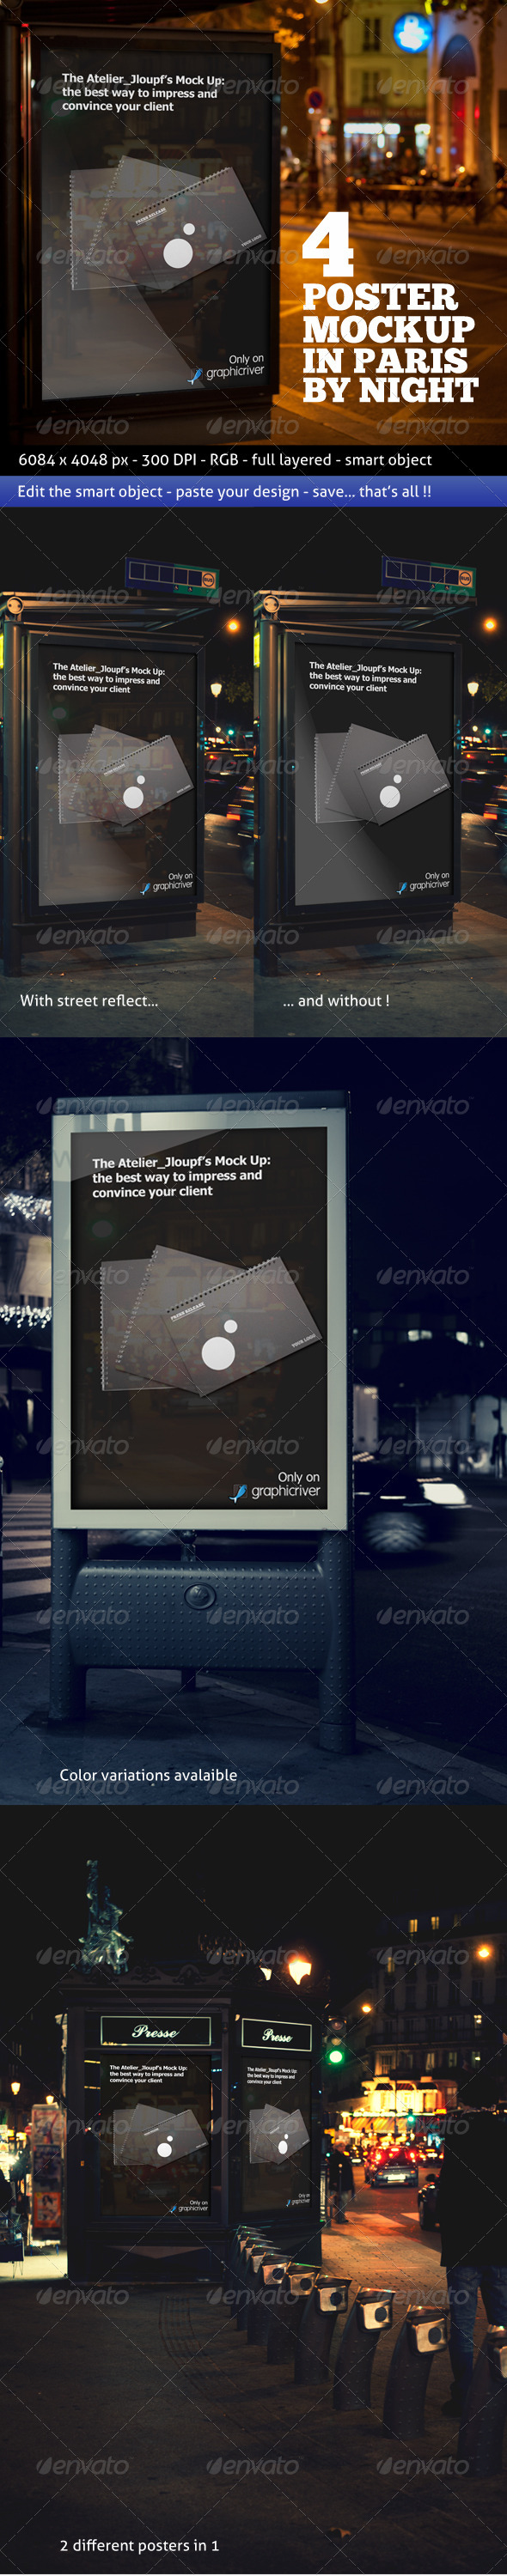 Photorealistic Poster Mockup In Paris By Night - Signage Print